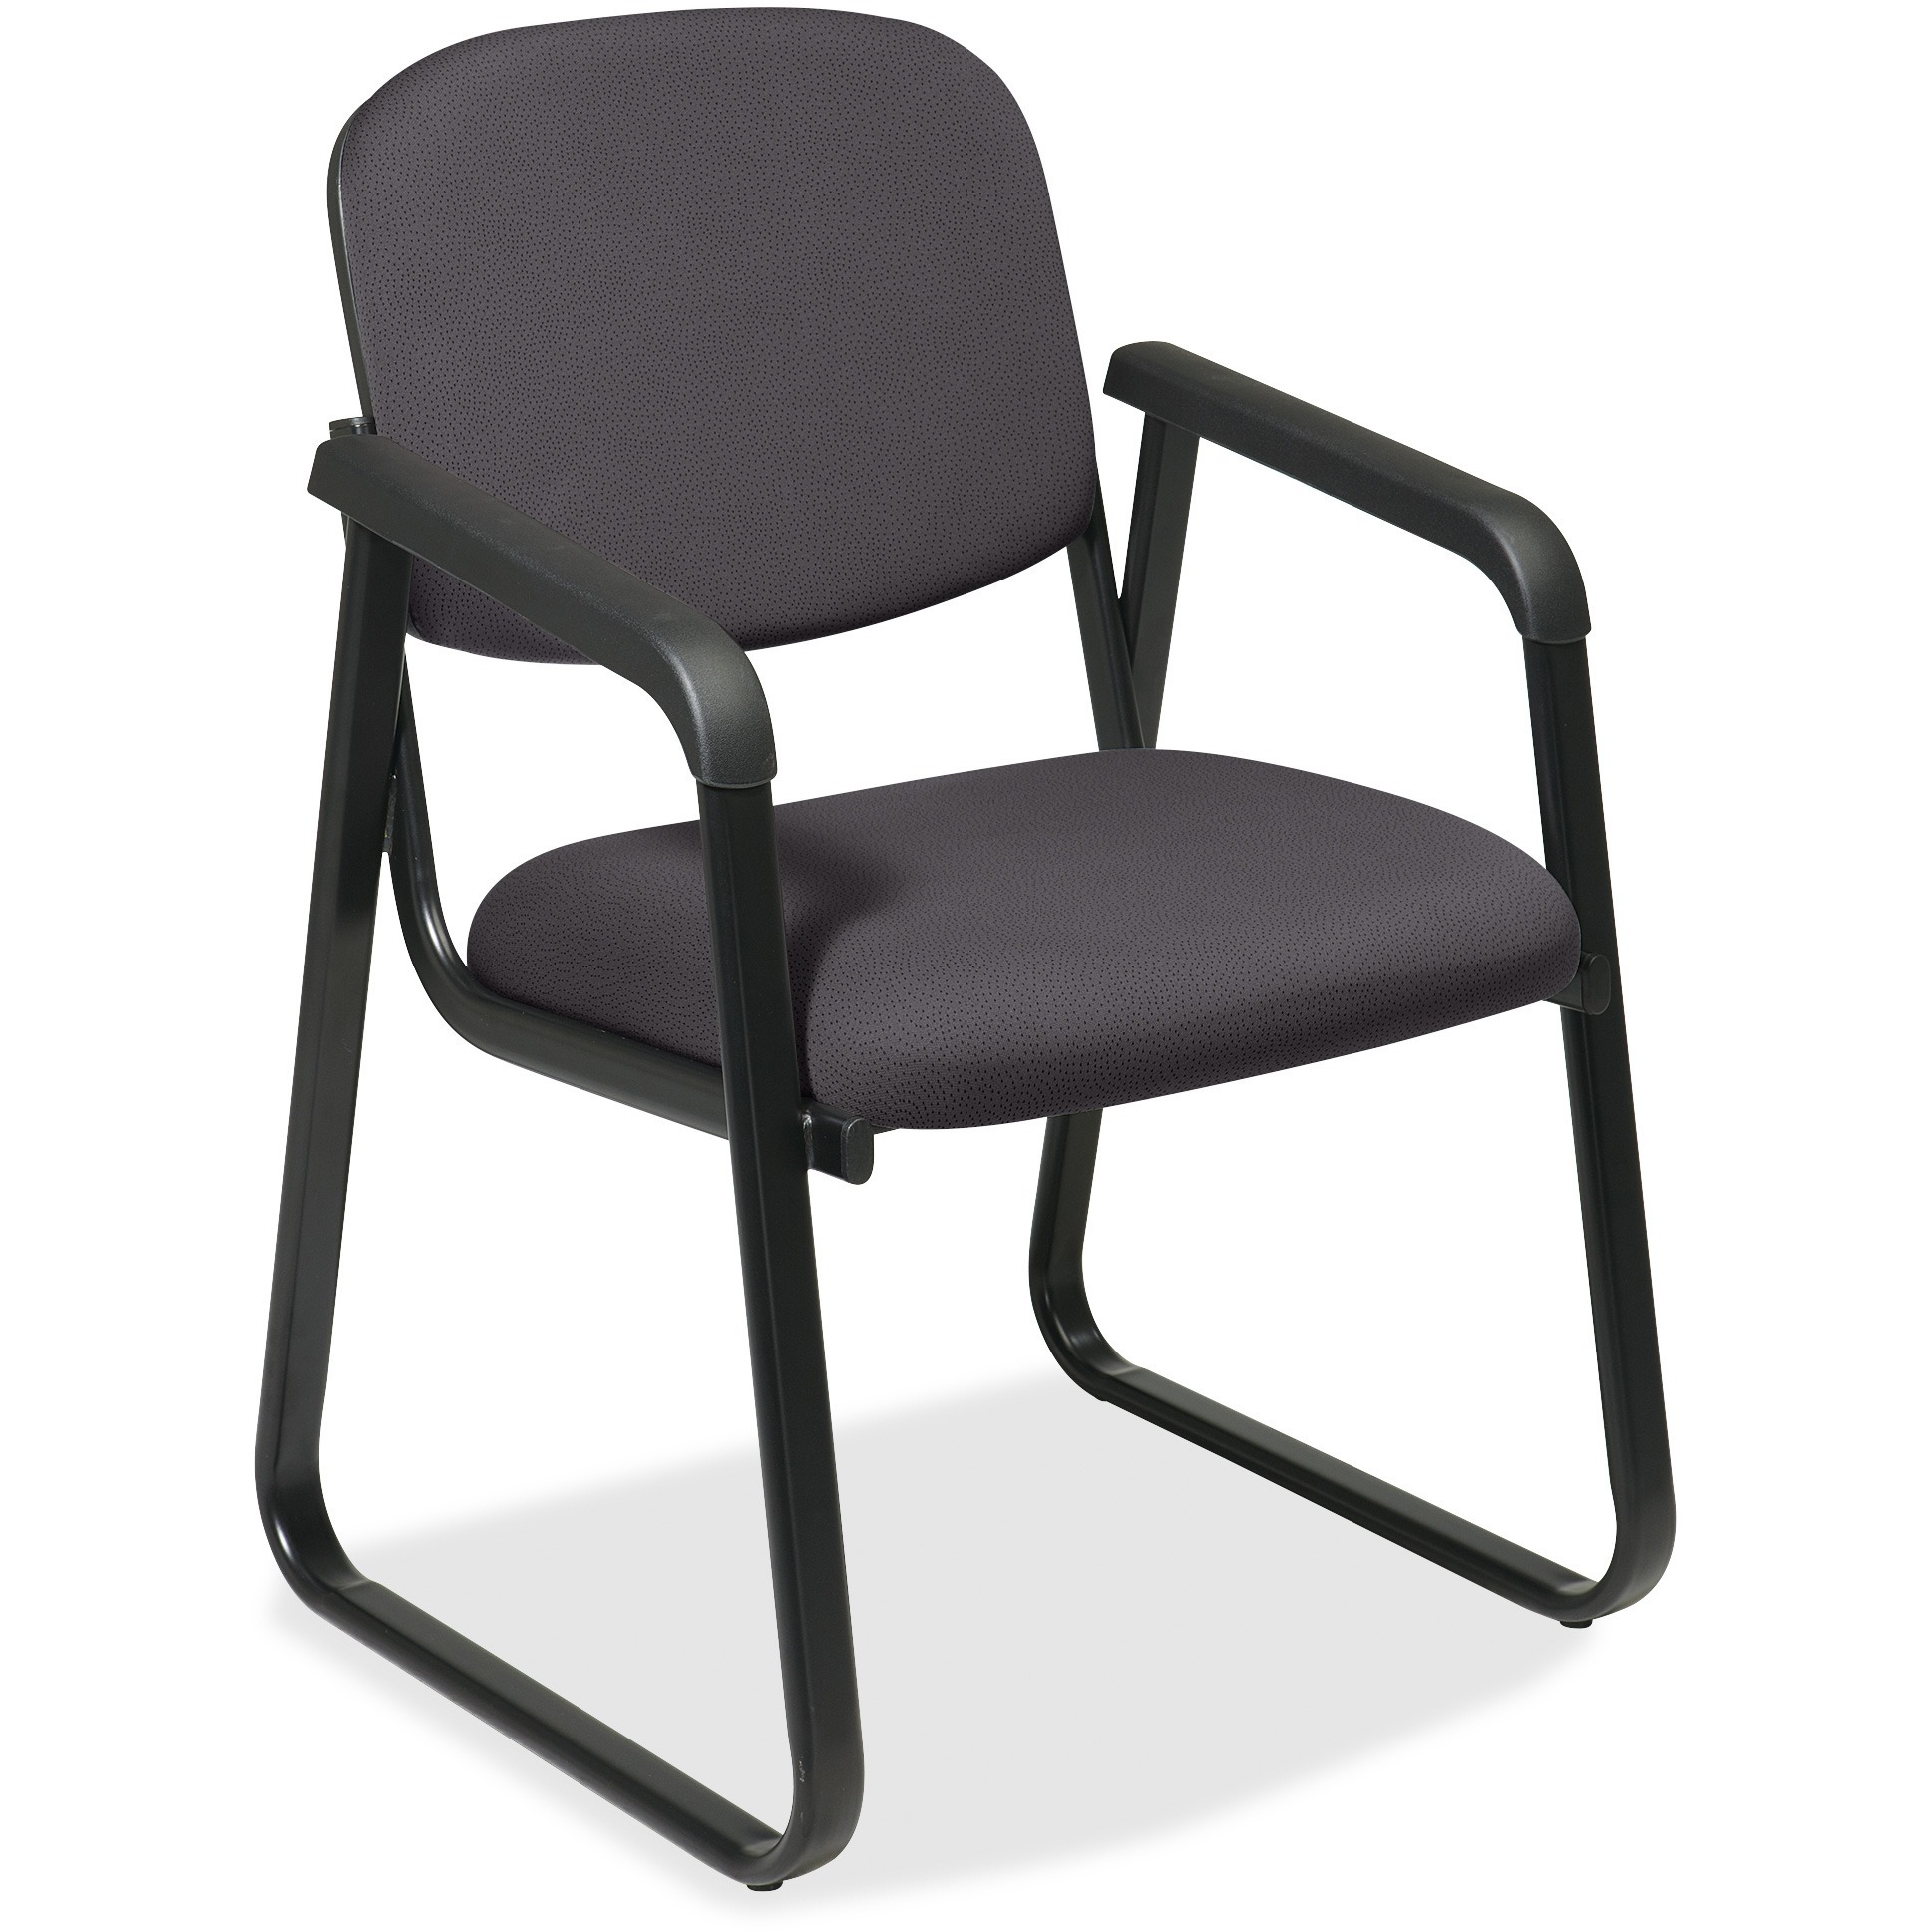 Office Star, OSPV441075, V4410 Deluxe Sled Base Arm Chair, 1 Each